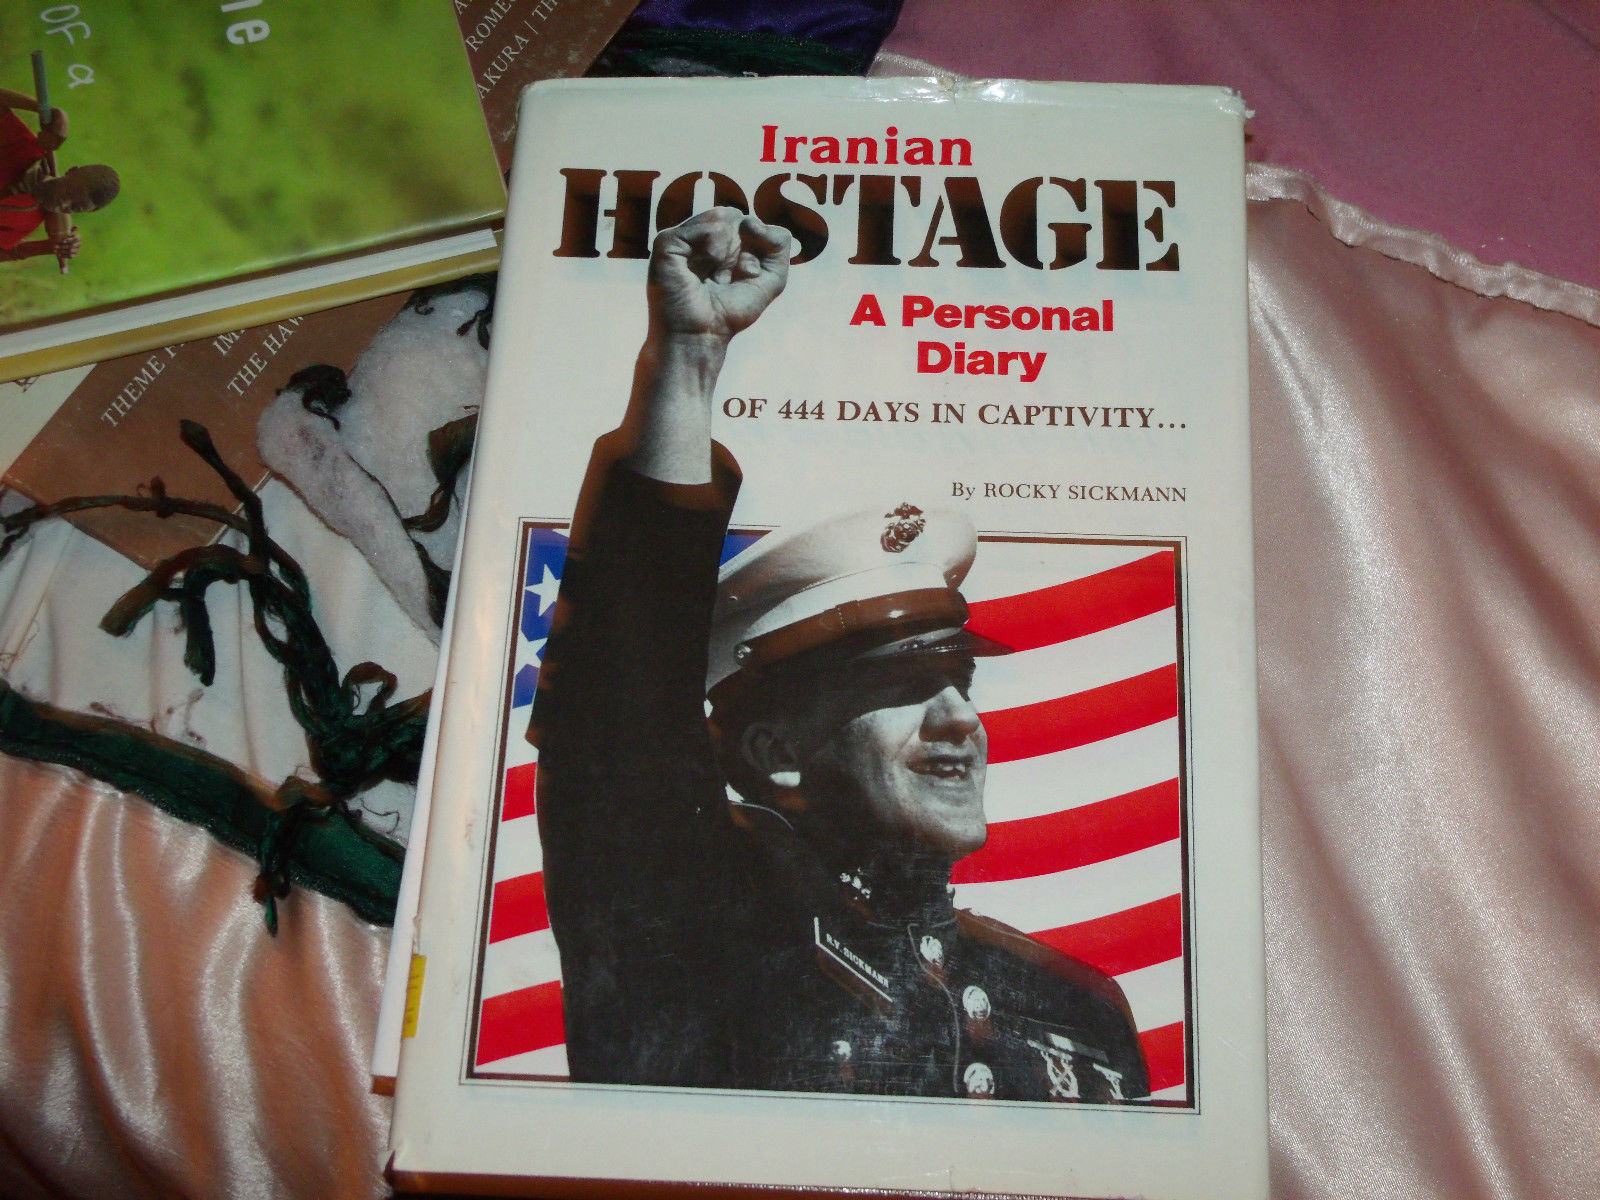 Iranian Hostage A Personal Diary 444 Days in Captivity SIGNED by Rocky Sickmann